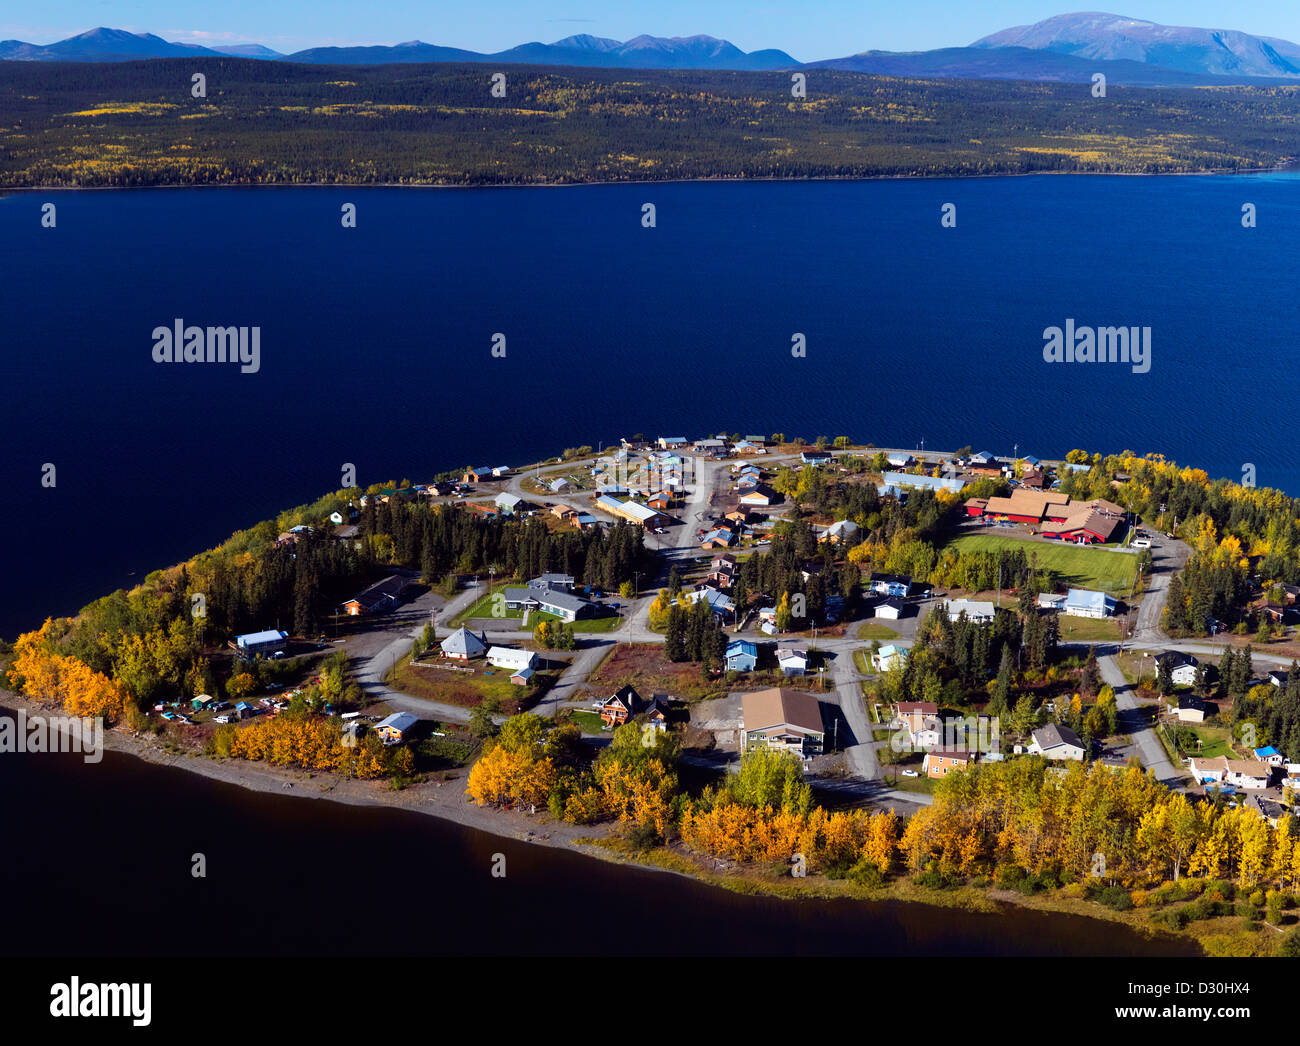 mobile homes for sale in ok with Stock Photo The First Nation Village Of Teslin At The Nisutlin Bay In The Yukon 53489132 on Recycled Dog And Cat Beds Etsy besides 50188913 further 50375186 likewise Cargo Container Homes Floor Plans Diy Used Shipping 489569 likewise 1000251031.